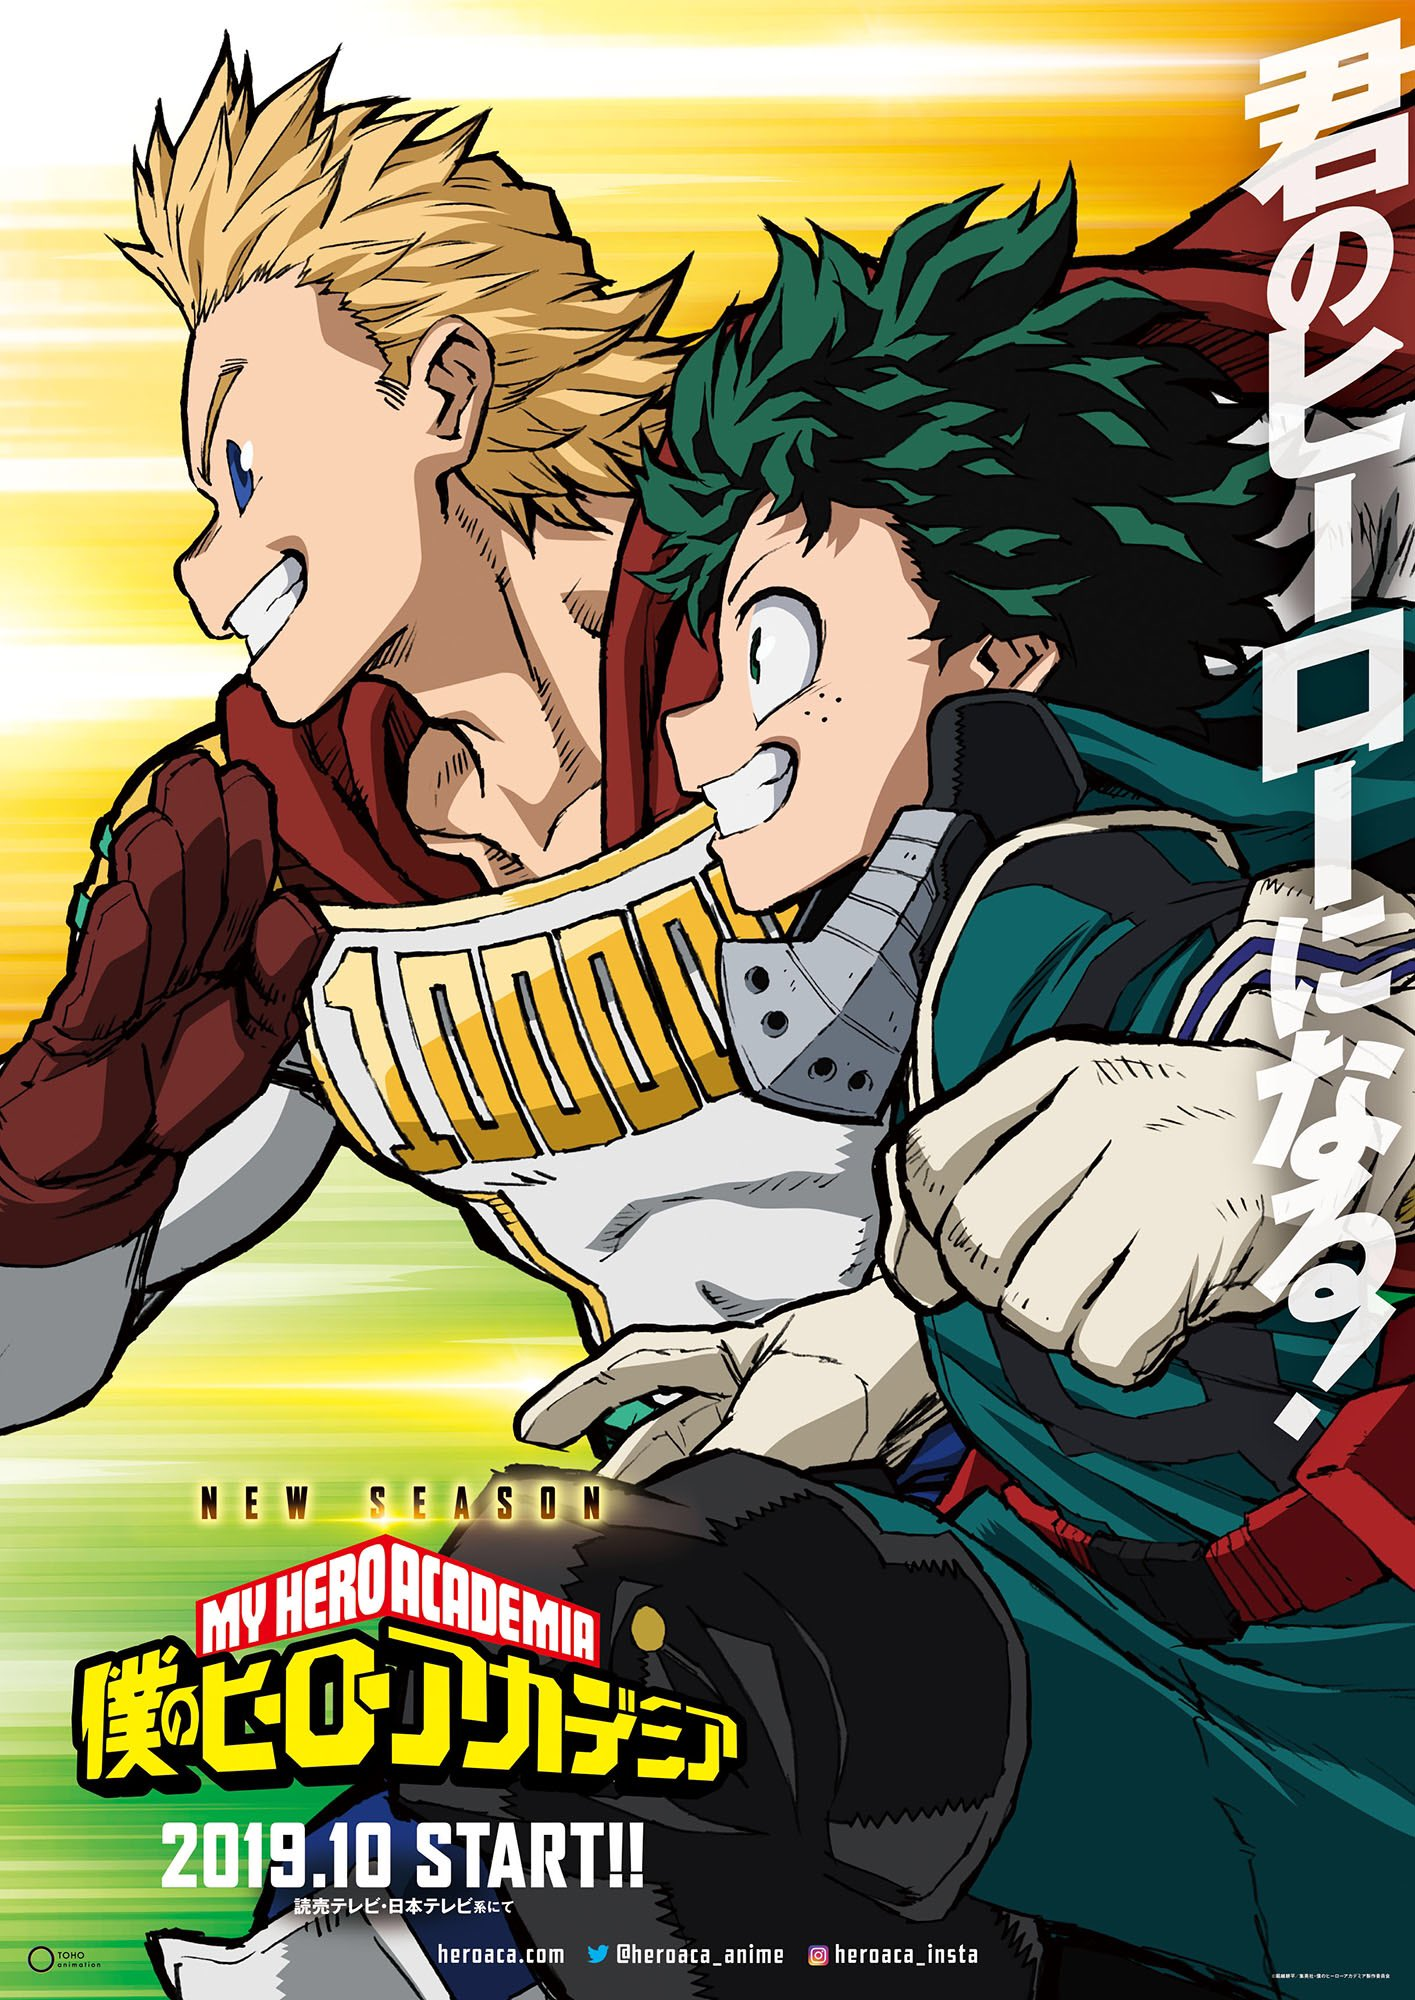 My hero academia 4 season 4 release date announced for october 2019